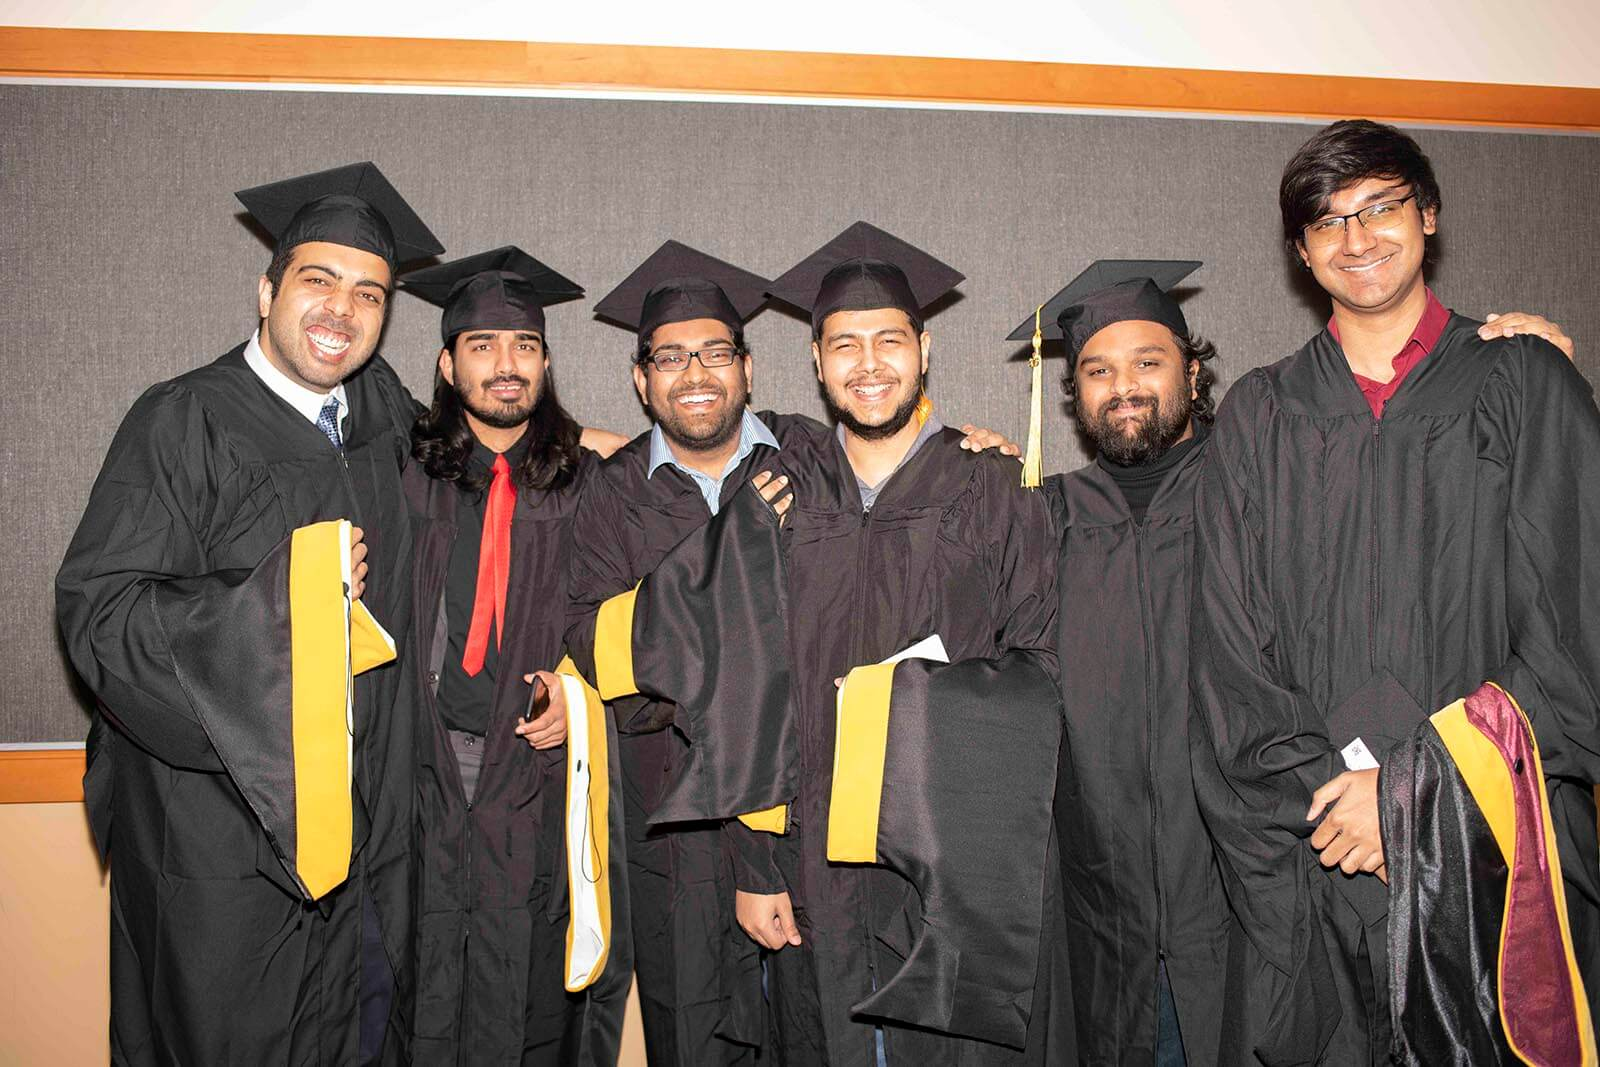 A group of master's degree students pose in graduate robes and mortarboards holding their colored candidate hoods.